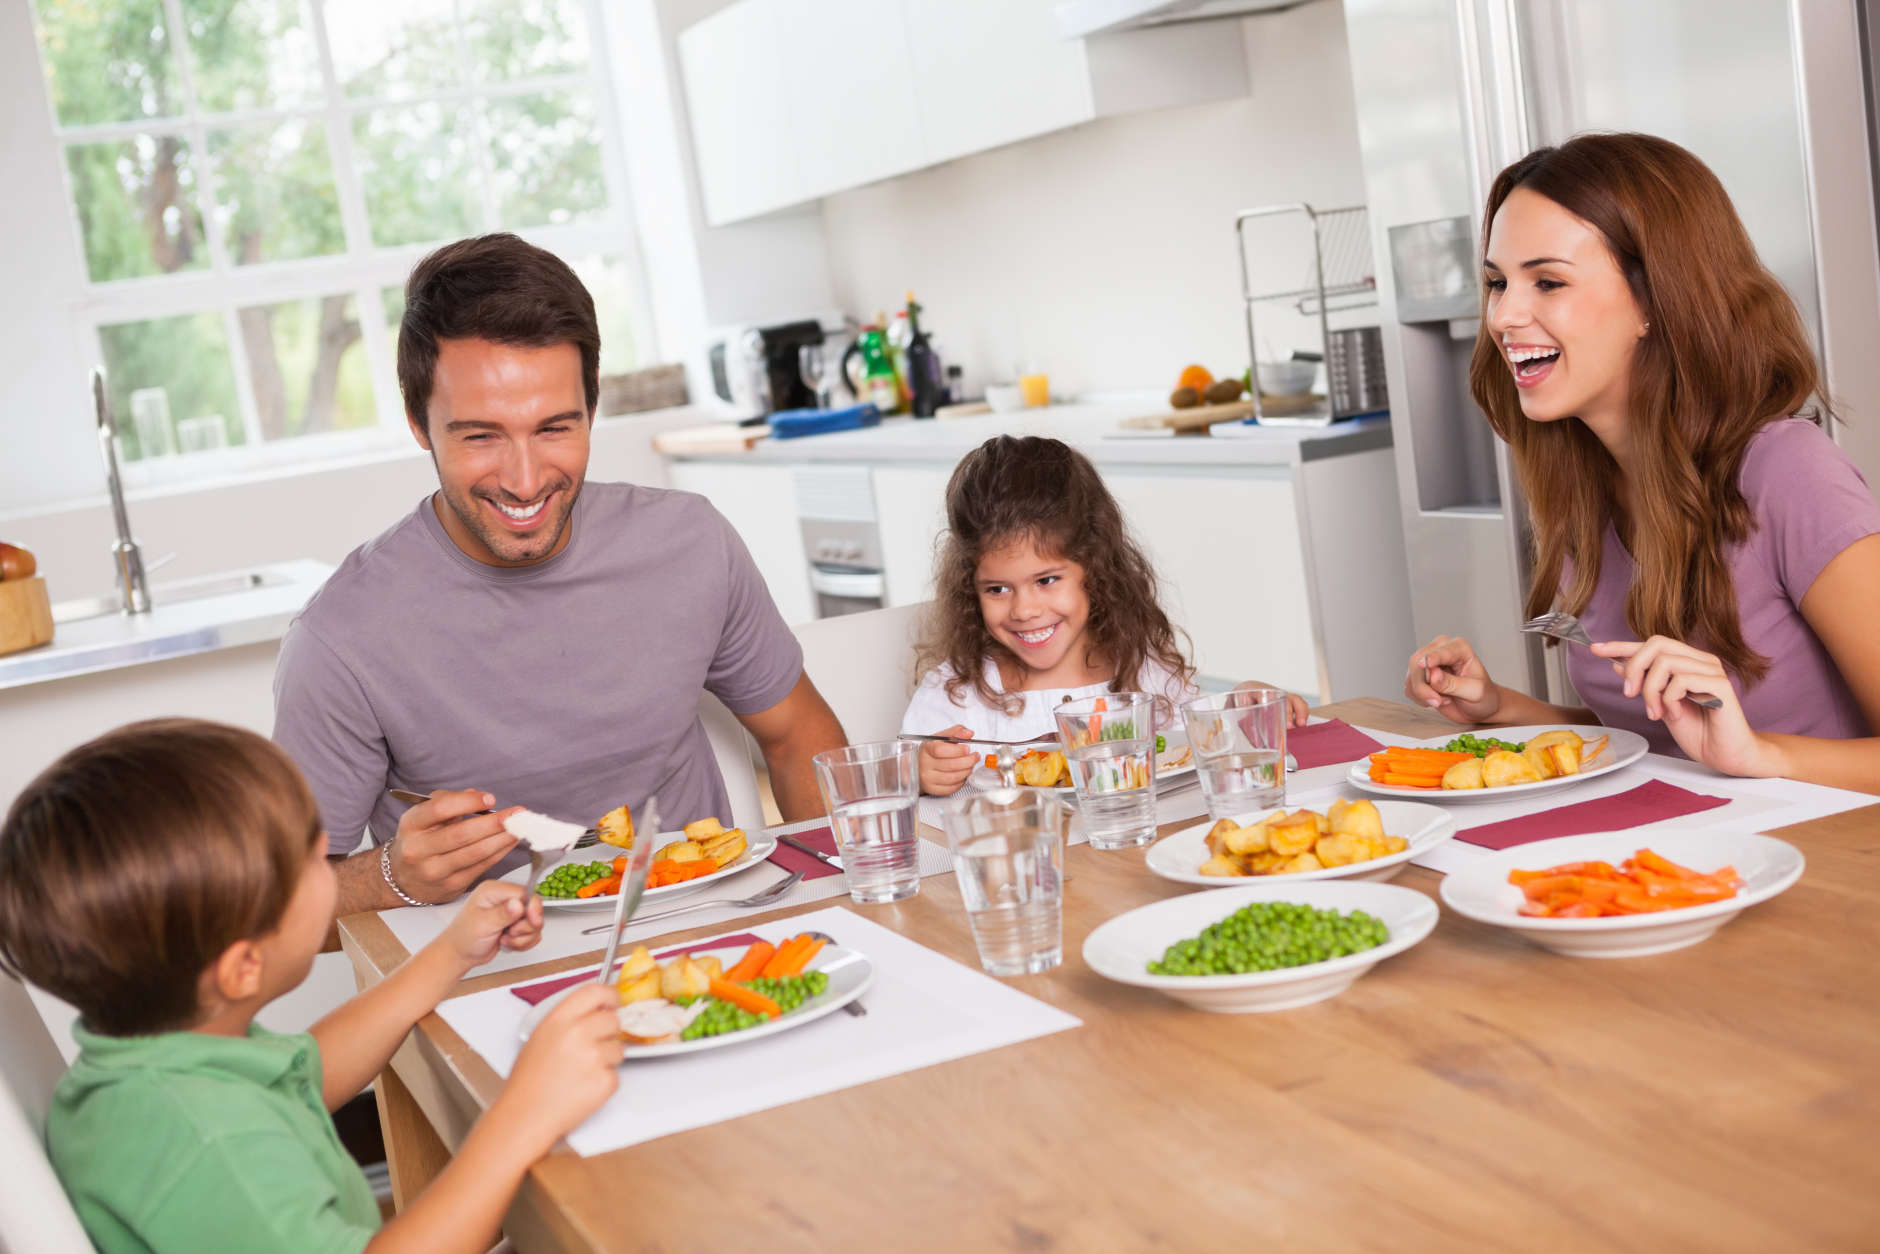 "<p><b>Have a regular meal where the family sits down and eats together </b></p> <p><span style=""font-weight: 400;"">""That doesn't mean every breakfast, lunch and dinner needs to be this whole ordeal,"" Shapiro said. ""But at least every day, for dinner, we still sit down together. Or, even if it&#8217;s just twice a week or on the weekends, we can treat eating not only as a means to an end, but also as a social experience and take a break, and remove the distractions of the electronics and the work and just focus on the food and the conversations.""</span></p> <p>It can also be a chance to introduce new foods. Baraban said her brother never liked salmon, but throughout the pandemic, she has been preparing it for her family. Now, he likes it.</p> <p>The dietitians said children need to be presented with a food item multiple times before they really can say if they dislike it.</p> <p><span style=""font-weight: 400;"">&#8220;Don&#8217;t give up,&#8221; Mohning said. &#8220;If they didn&#8217;t like something at age 5 they may like it at age 10. Especially vegetables. As they&#8217;re developing, their taste buds change a lot.&#8221;</span></p>"